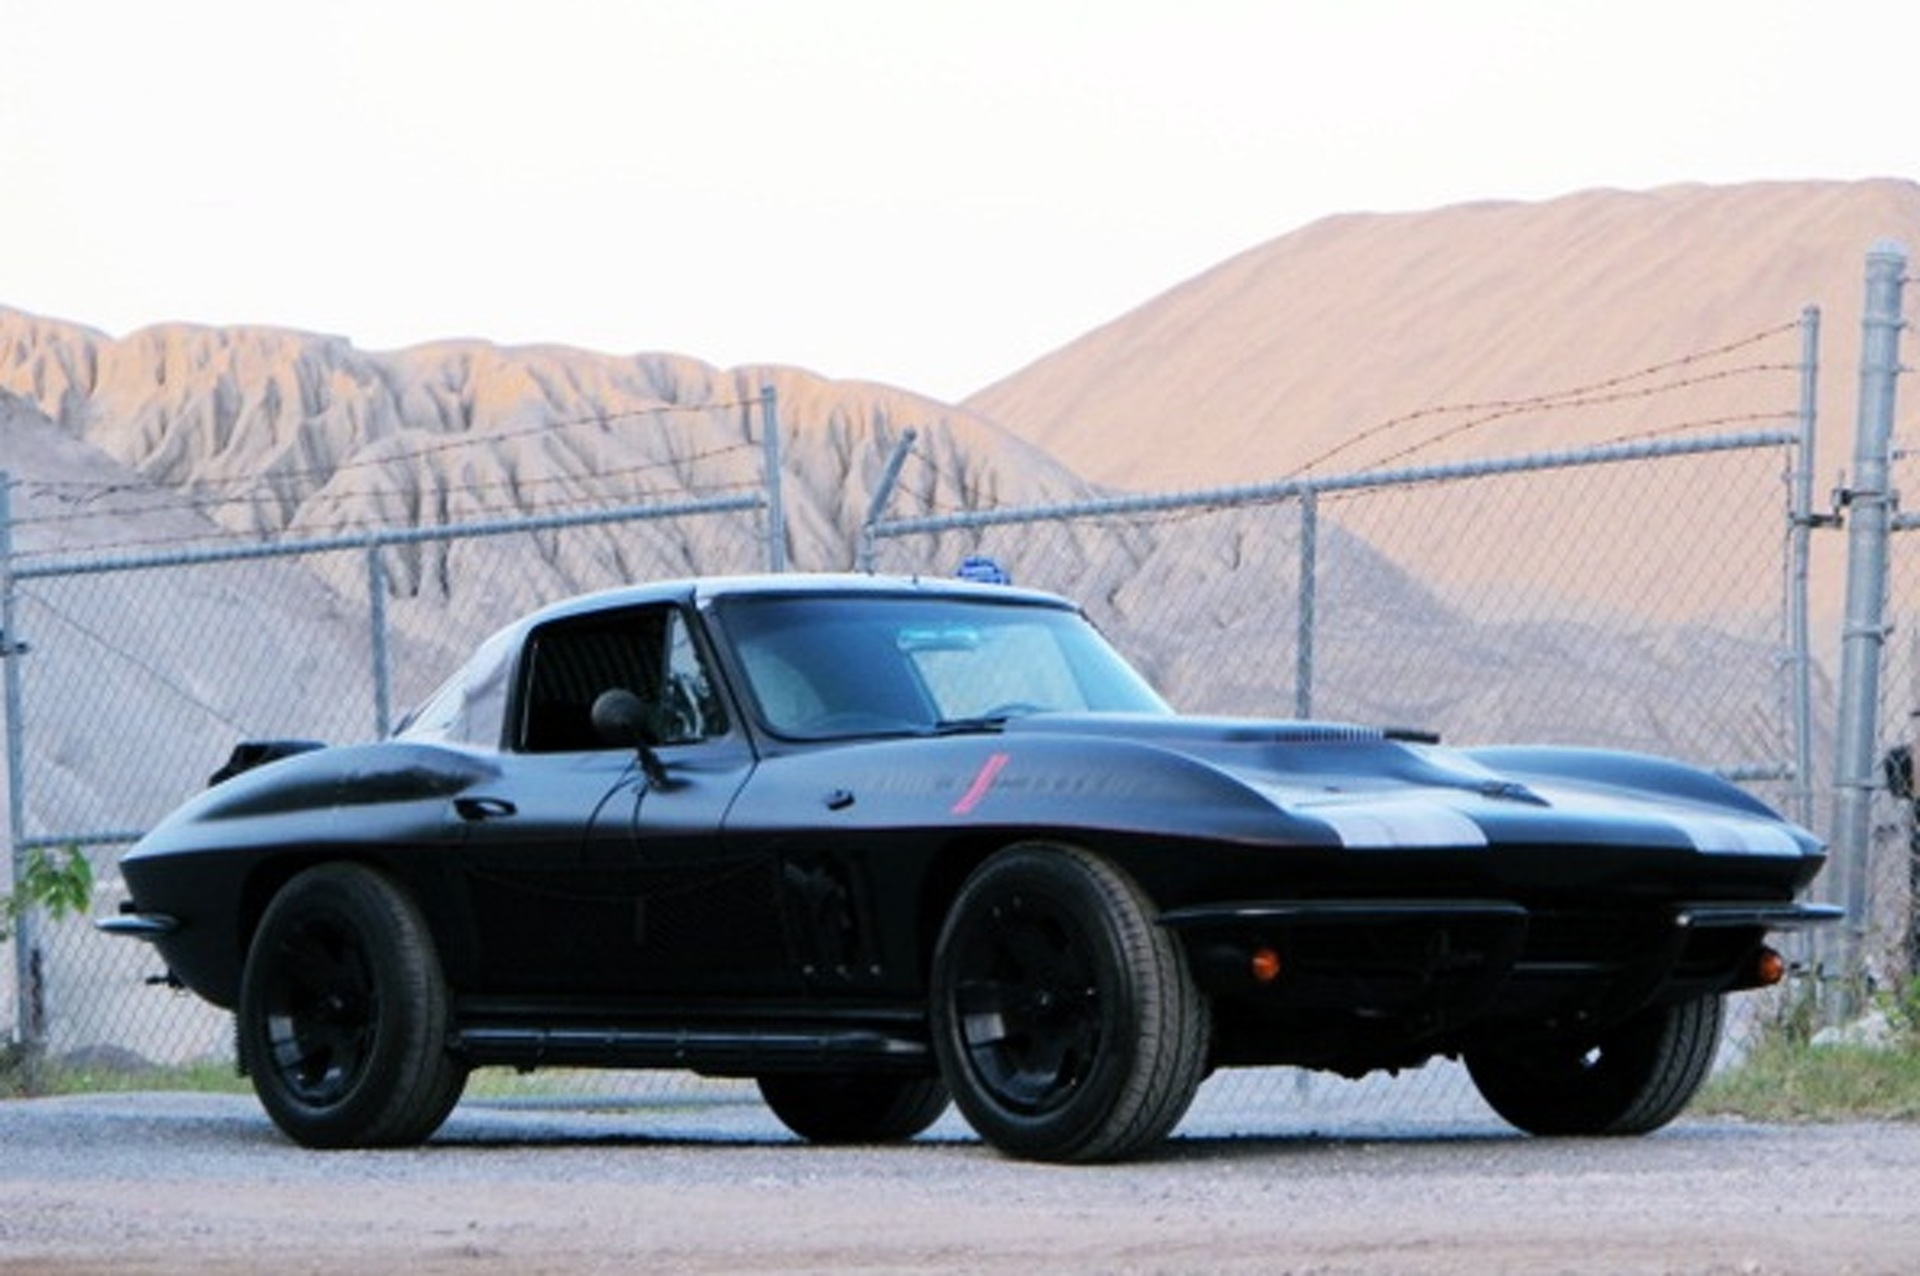 Mad Max Car For Sale >> This Crazy Mad Max Corvette Is On Ebay Right Now